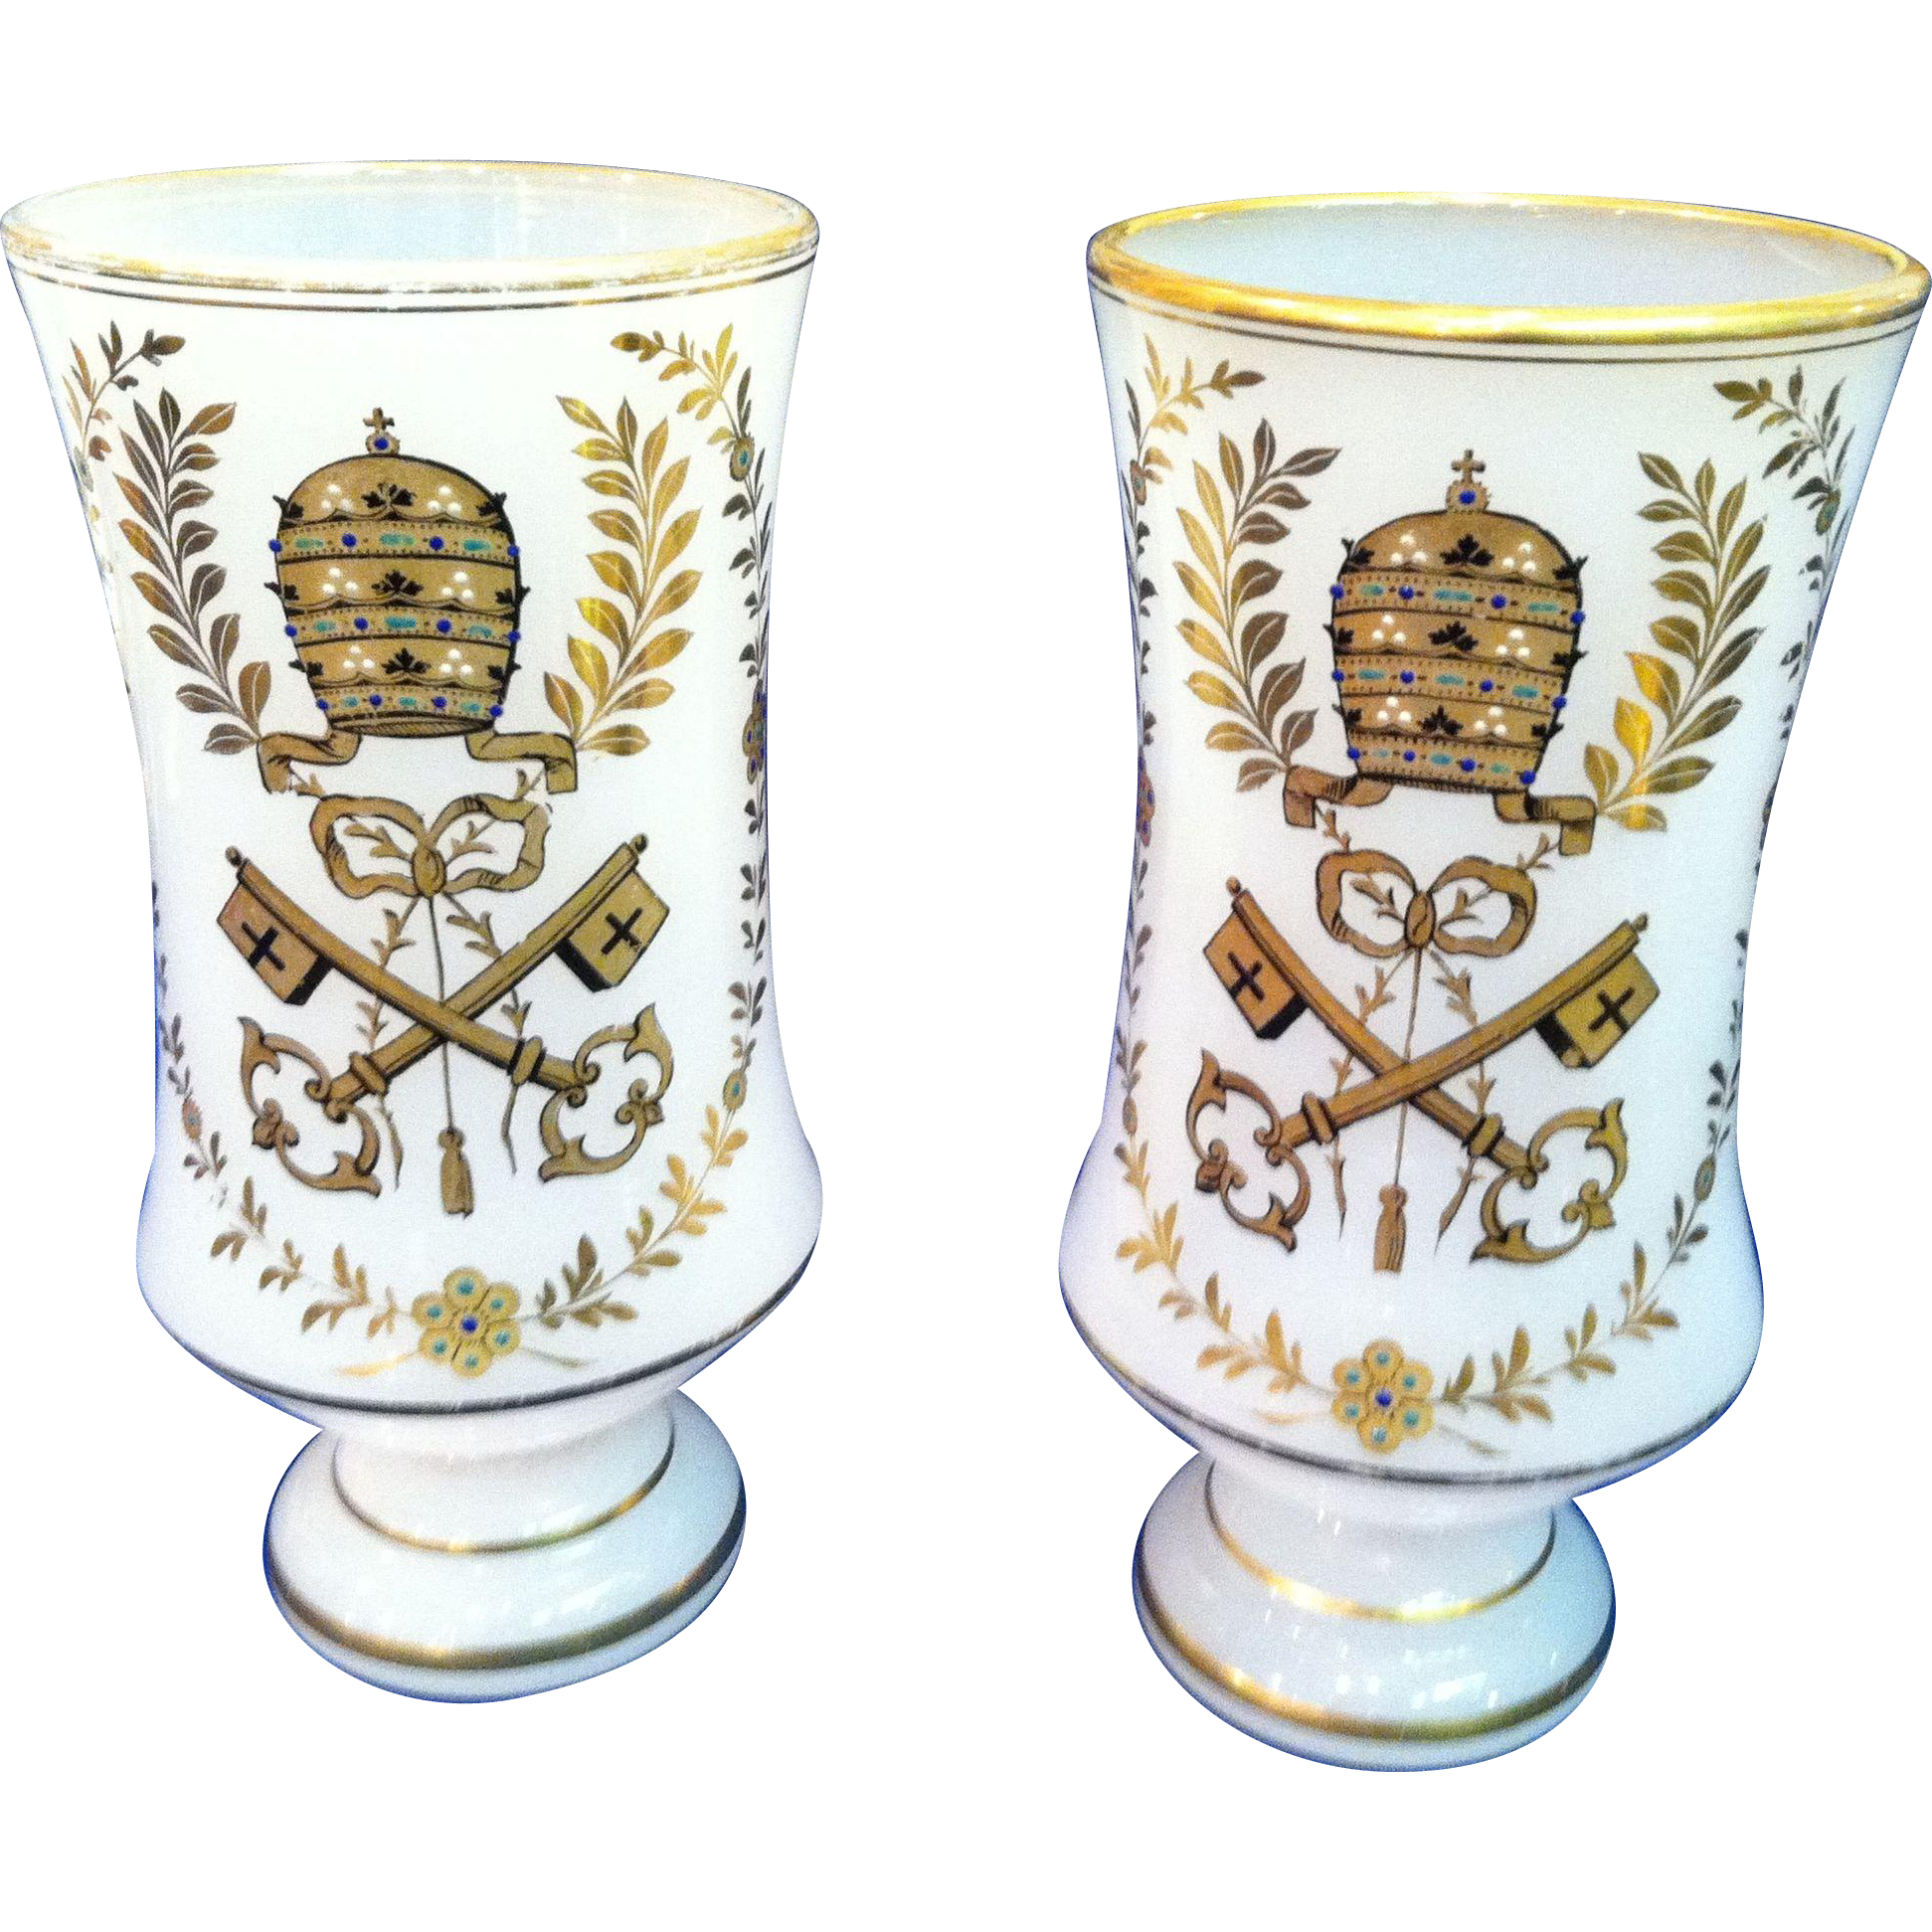 Pair of French Opaline Vases, Decor of Papal State Coat of Arms, CA.1850